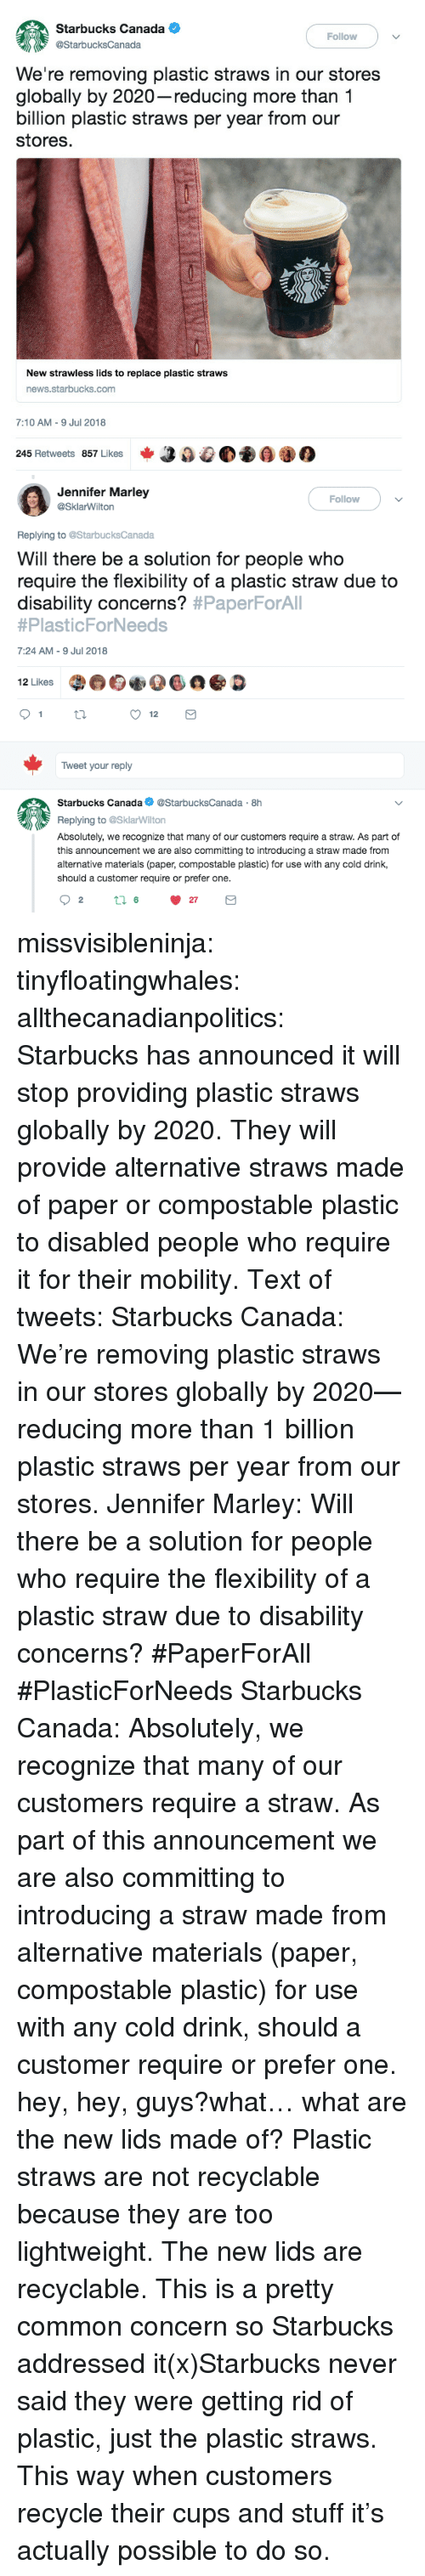 News, Starbucks, and Target: Starbucks Canada  @StarbucksCanada  Follow  We're removing plastic straws in our stores  globally by 2020-reducing more than 1  billion plastic straws per year from our  stores.  New strawless lids to replace plastic straws  news.starbucks.com  7:10 AM - 9 Jul 2018  * 3  QO  0 00  245 Retweets 857 Likes   Jennifer Marley  @SklarWilton  Follow  Replying to @StarbucksCanada  Will there be a solution for people who  require the flexibility of a plastic straw due to  disability concerns? #PaperForAll  #PlasticForNeeds  7:24 AM-9 Jul 2018  12 Likes  91 th  Tweet your reply  Starbucks Canada @StarbucksCanada 8h  Replying to @SklarWilton  Absolutely, we recognize that many of our customers require a straw. As part of  this announcement we are also committing to introducing a straw made from  alternative materials (paper, compostable plastic) for use with any cold drink  should a customer require or prefer one. missvisibleninja:  tinyfloatingwhales:  allthecanadianpolitics:  Starbucks has announced it will stop providing plastic straws globally by 2020. They will provide alternative straws made of paper or compostable plastic to disabled people who require it for their mobility. Text of tweets:  Starbucks Canada: We're removing plastic straws in our stores globally by 2020—reducing more than 1 billion plastic straws per year from our stores. Jennifer Marley: Will there be a solution for people who require the flexibility of a plastic straw due to disability concerns? #PaperForAll #PlasticForNeeds Starbucks Canada: Absolutely, we recognize that many of our customers require a straw. As part of this announcement we are also committing to introducing a straw made from alternative materials (paper, compostable plastic) for use with any cold drink, should a customer require or prefer one.   hey, hey, guys?what… what are the new lids made of?  Plastic straws are not recyclable because they are too lightweight. The new lids are recyclable. This is a pr